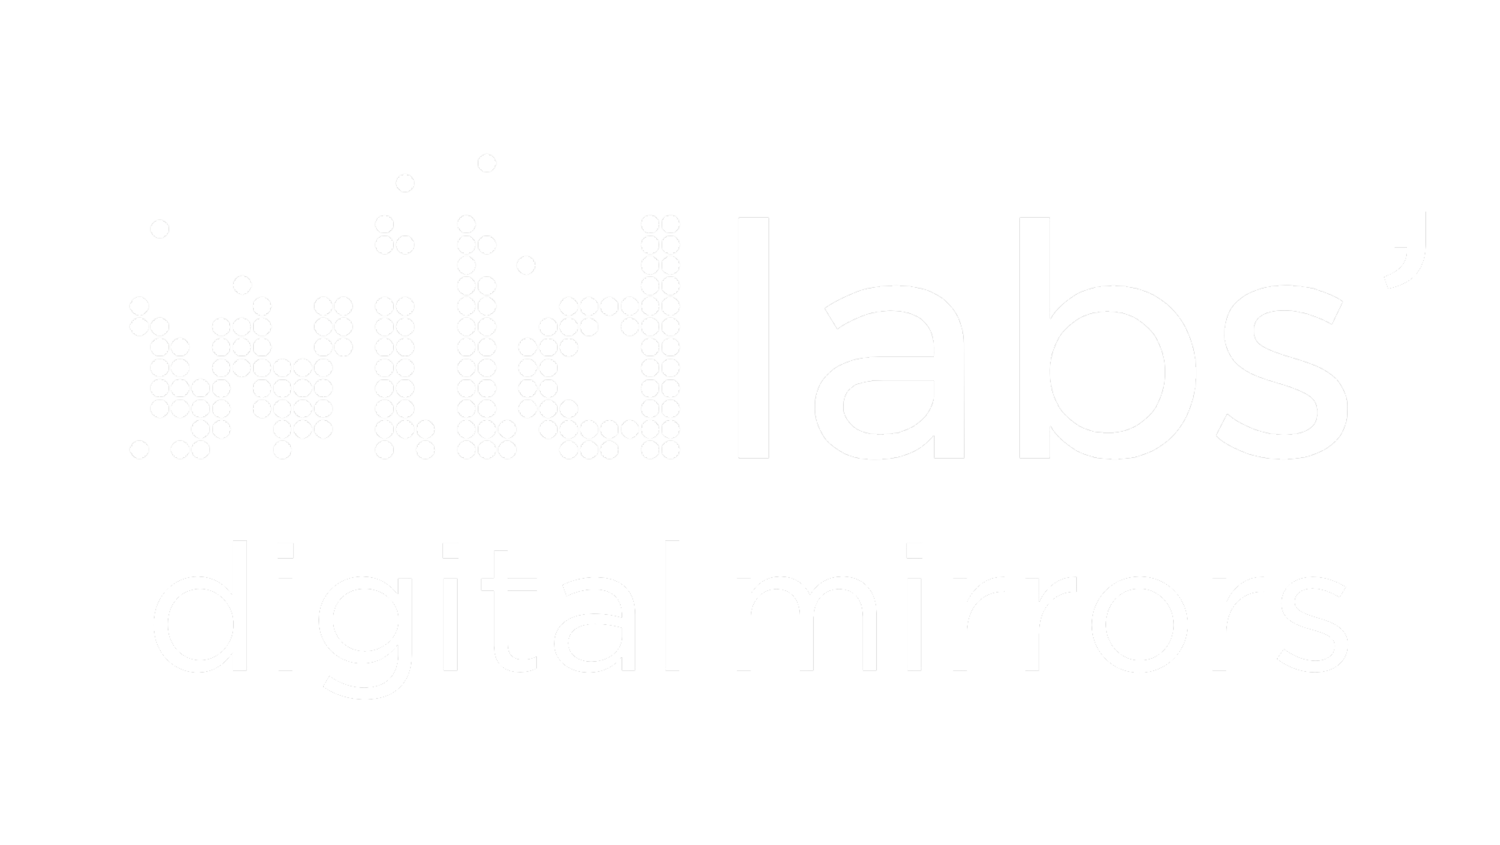 Digital Mirrors by Wildlabs